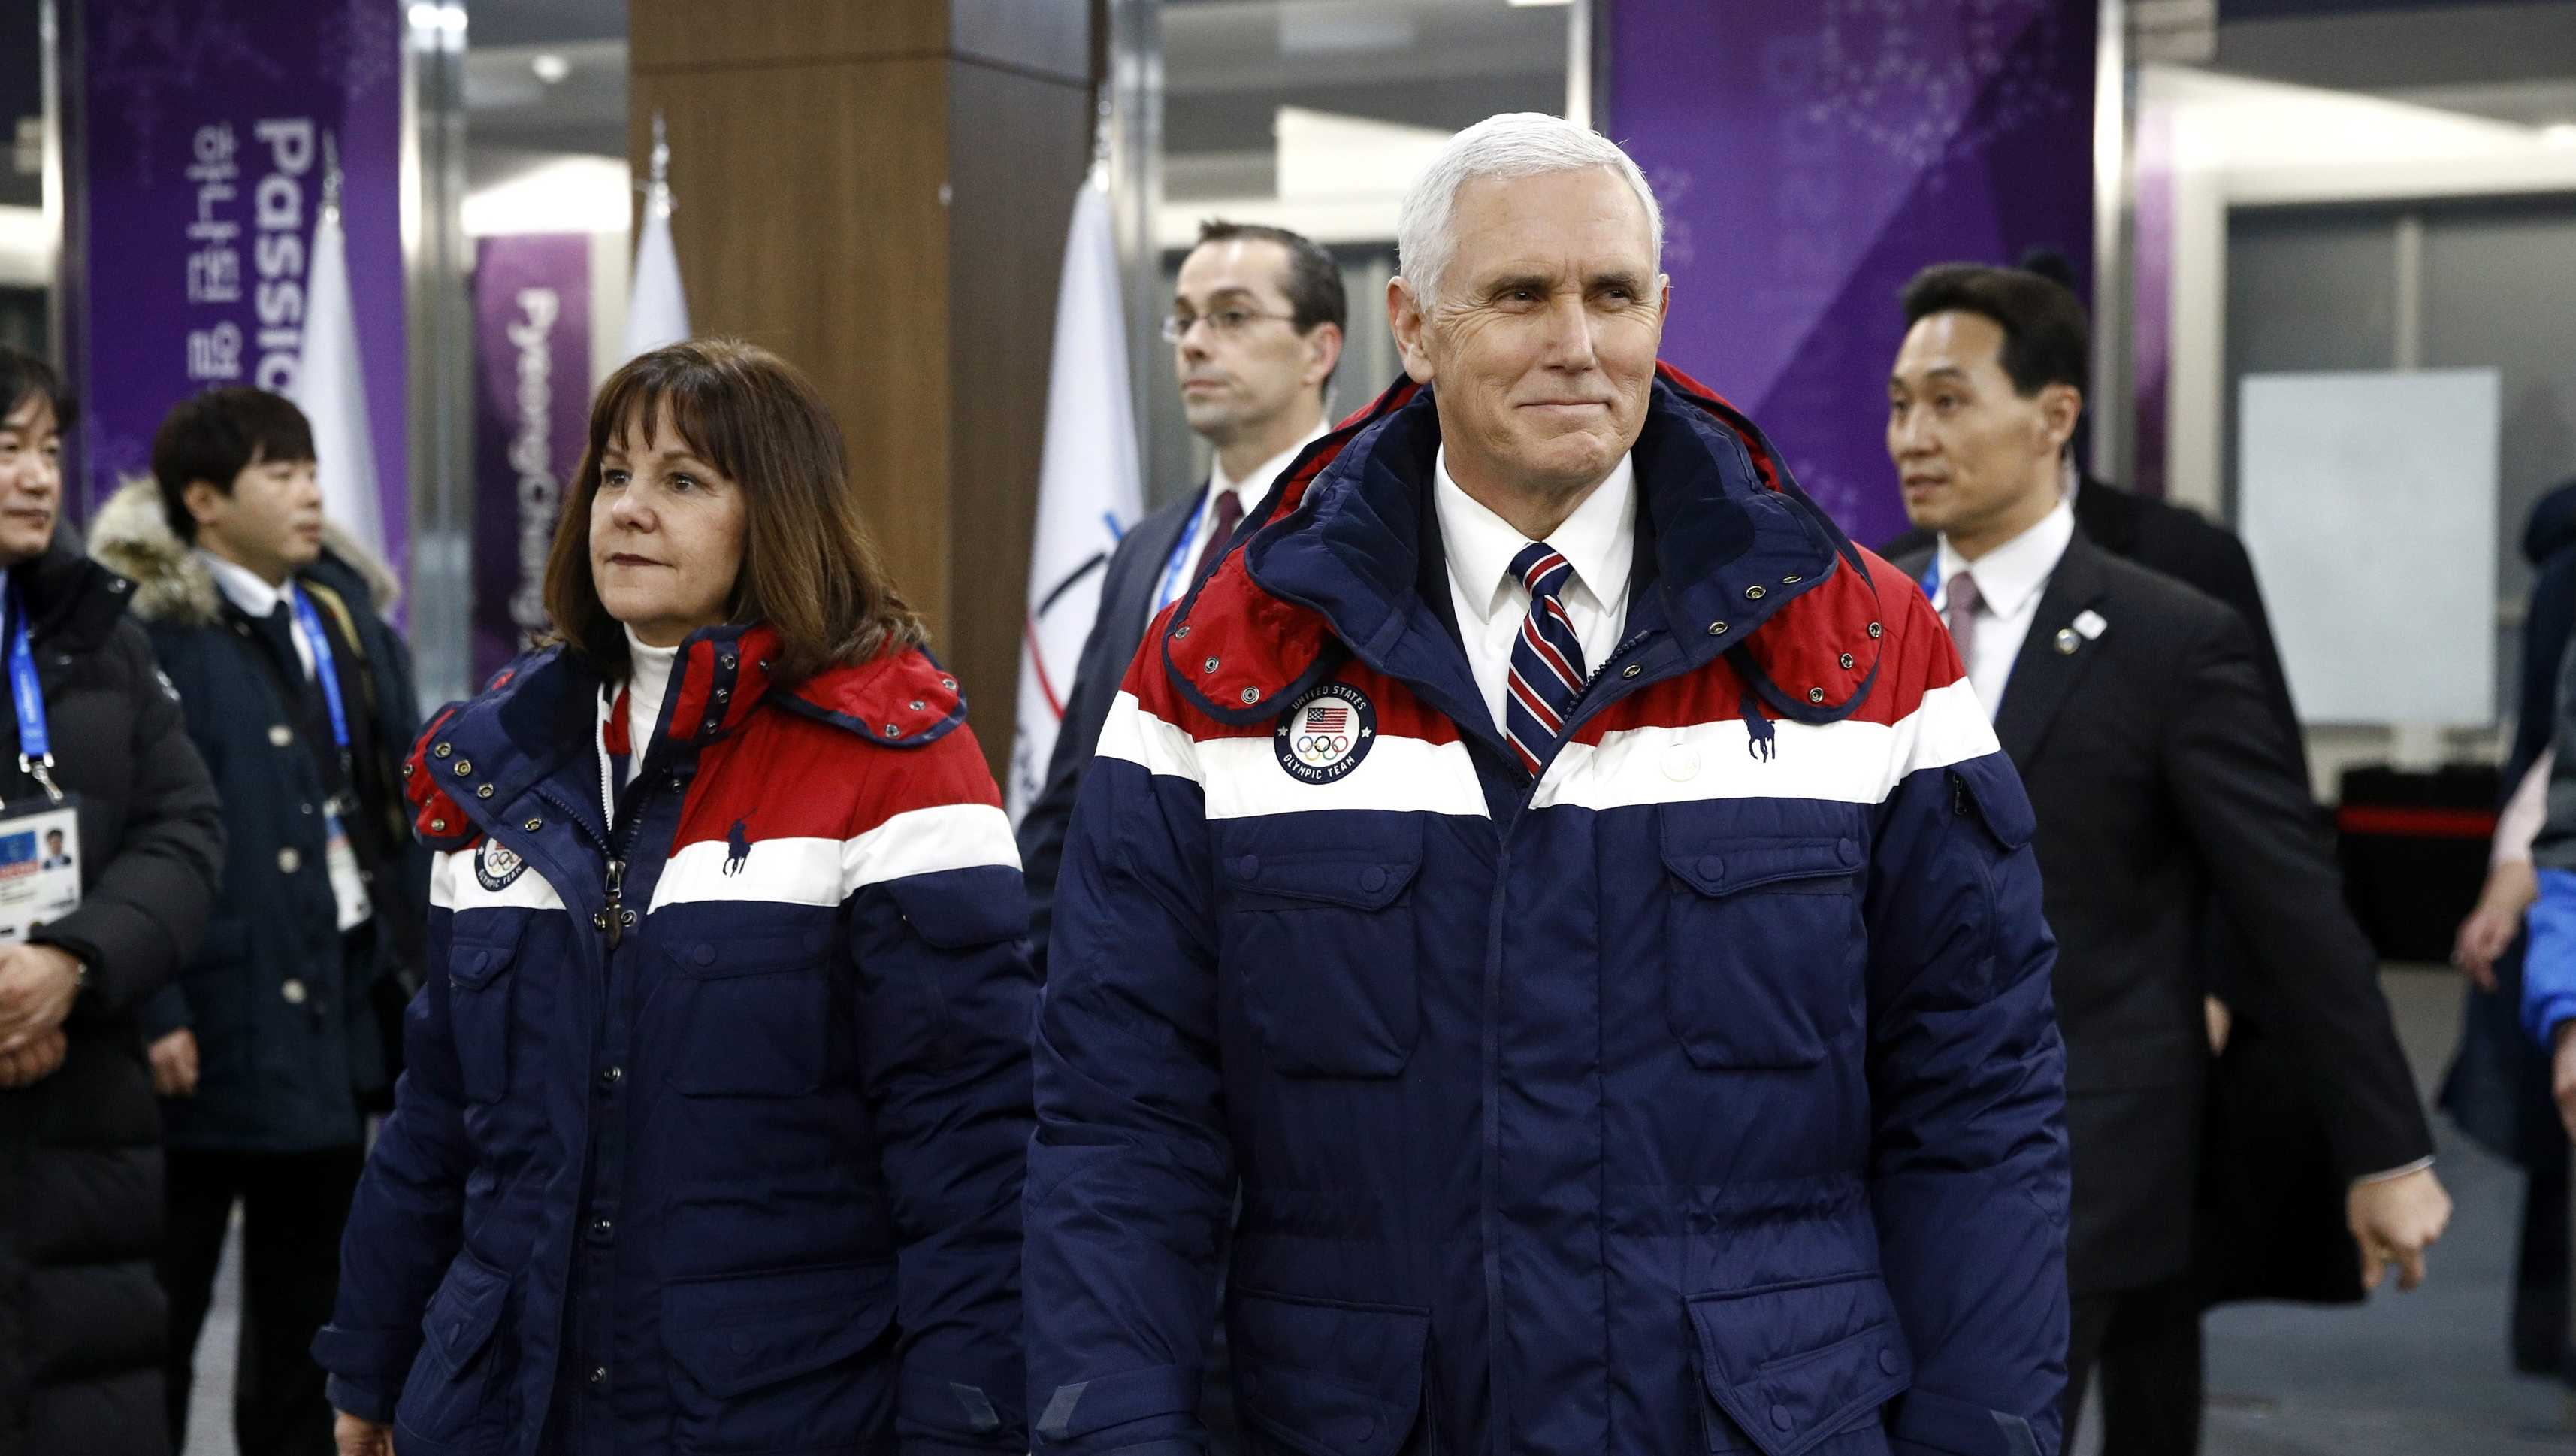 Vice President Mike Pence walks to his seat alongside second lady Karen Pence at the opening ceremony of the 2018 Winter Olympic Games at PyeongChang Olympic Stadium on February 9, 2018 in South Korea.